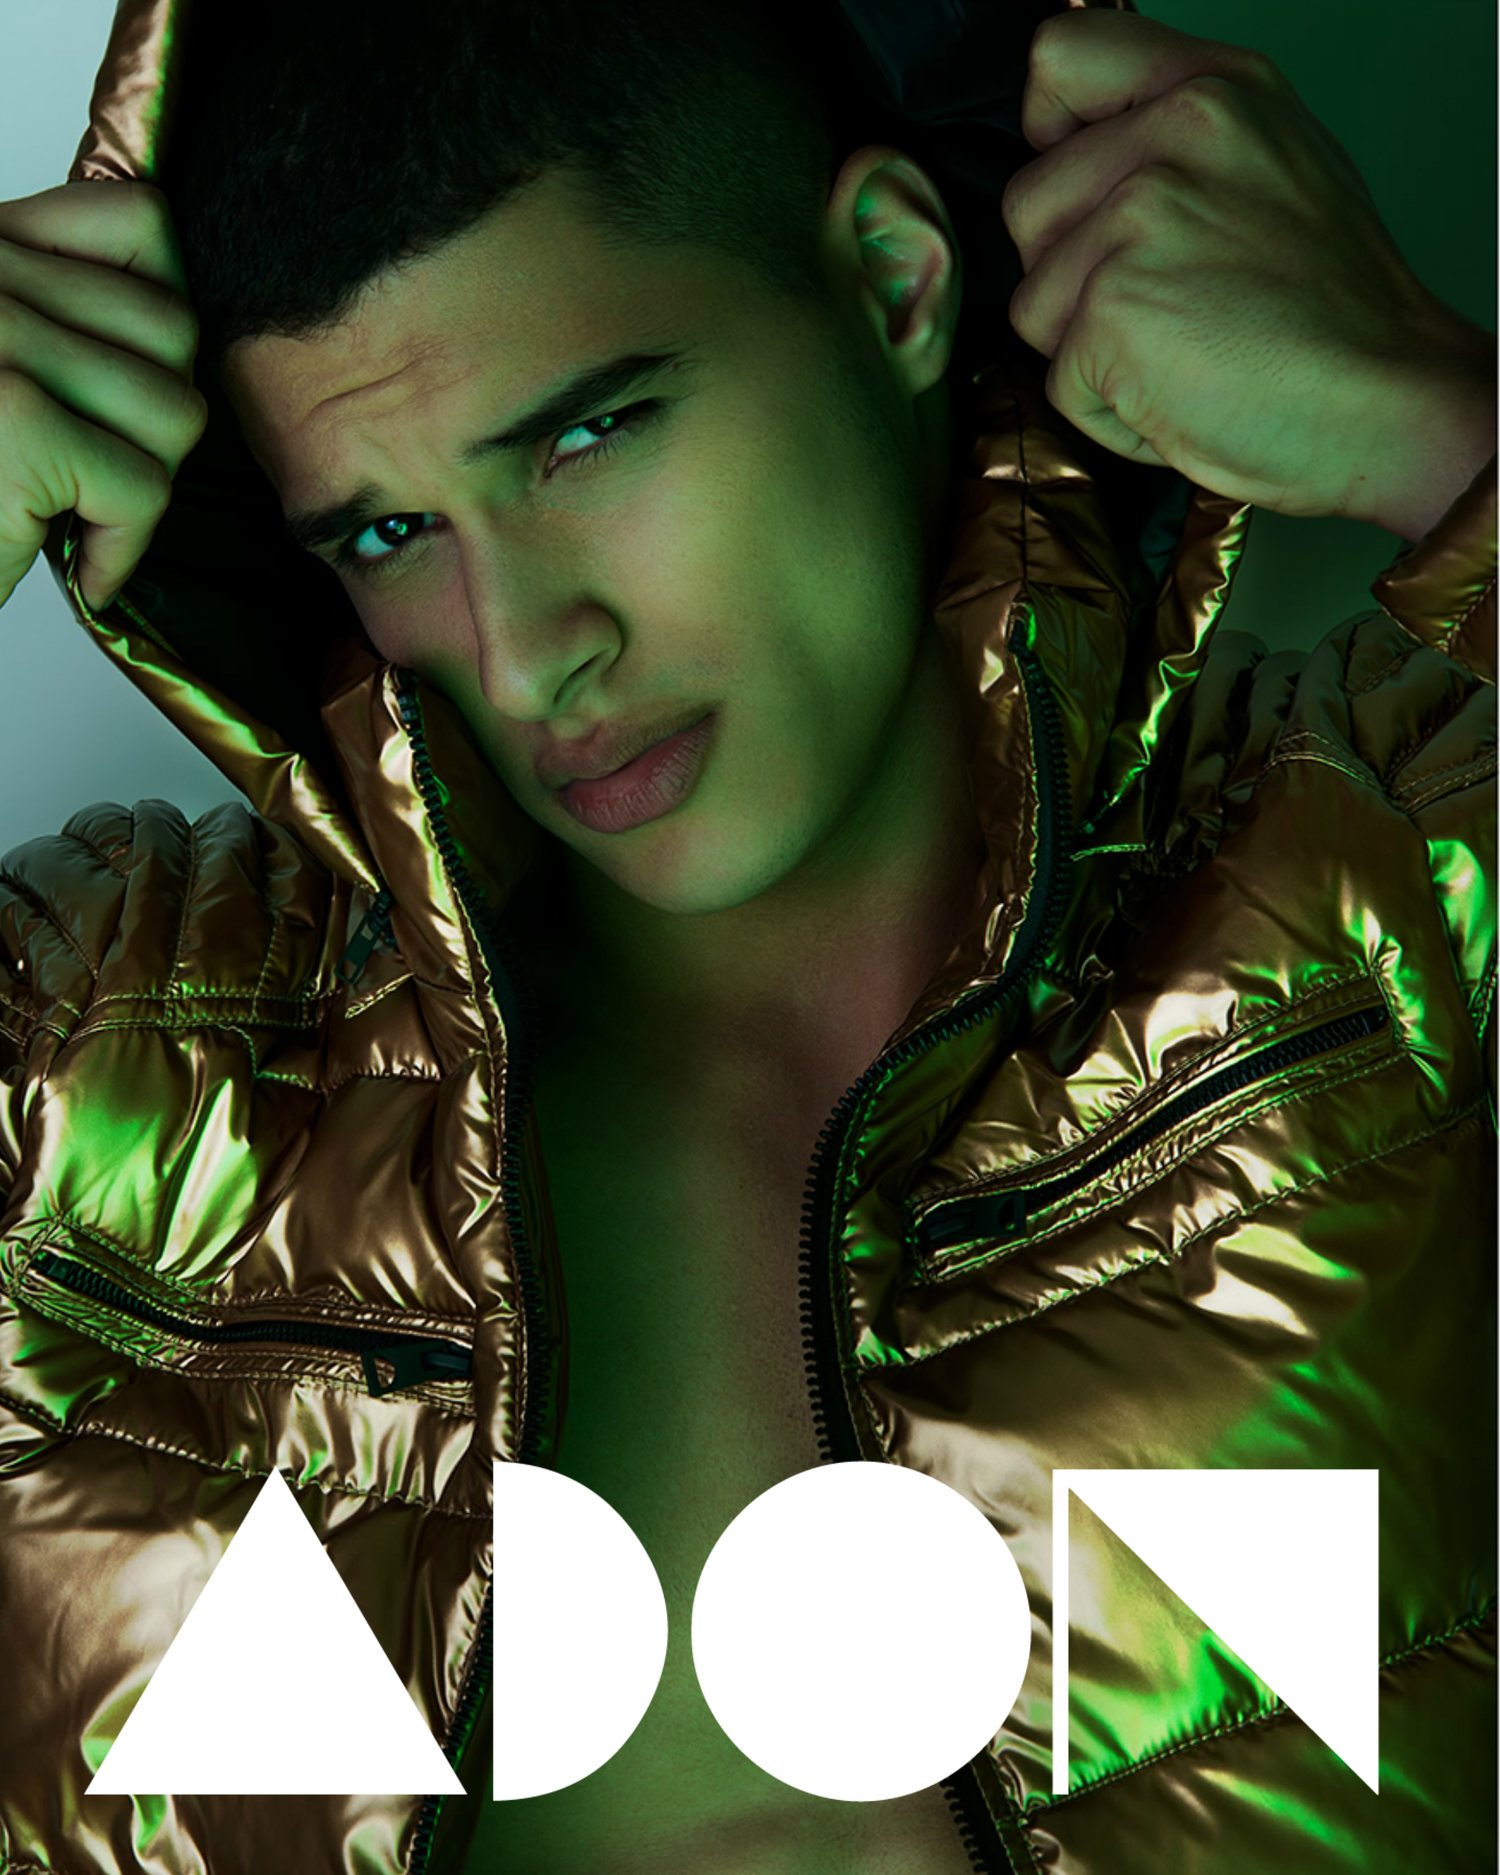 Adon Exclusive: Model Markus Martinez By Carlos Montelara